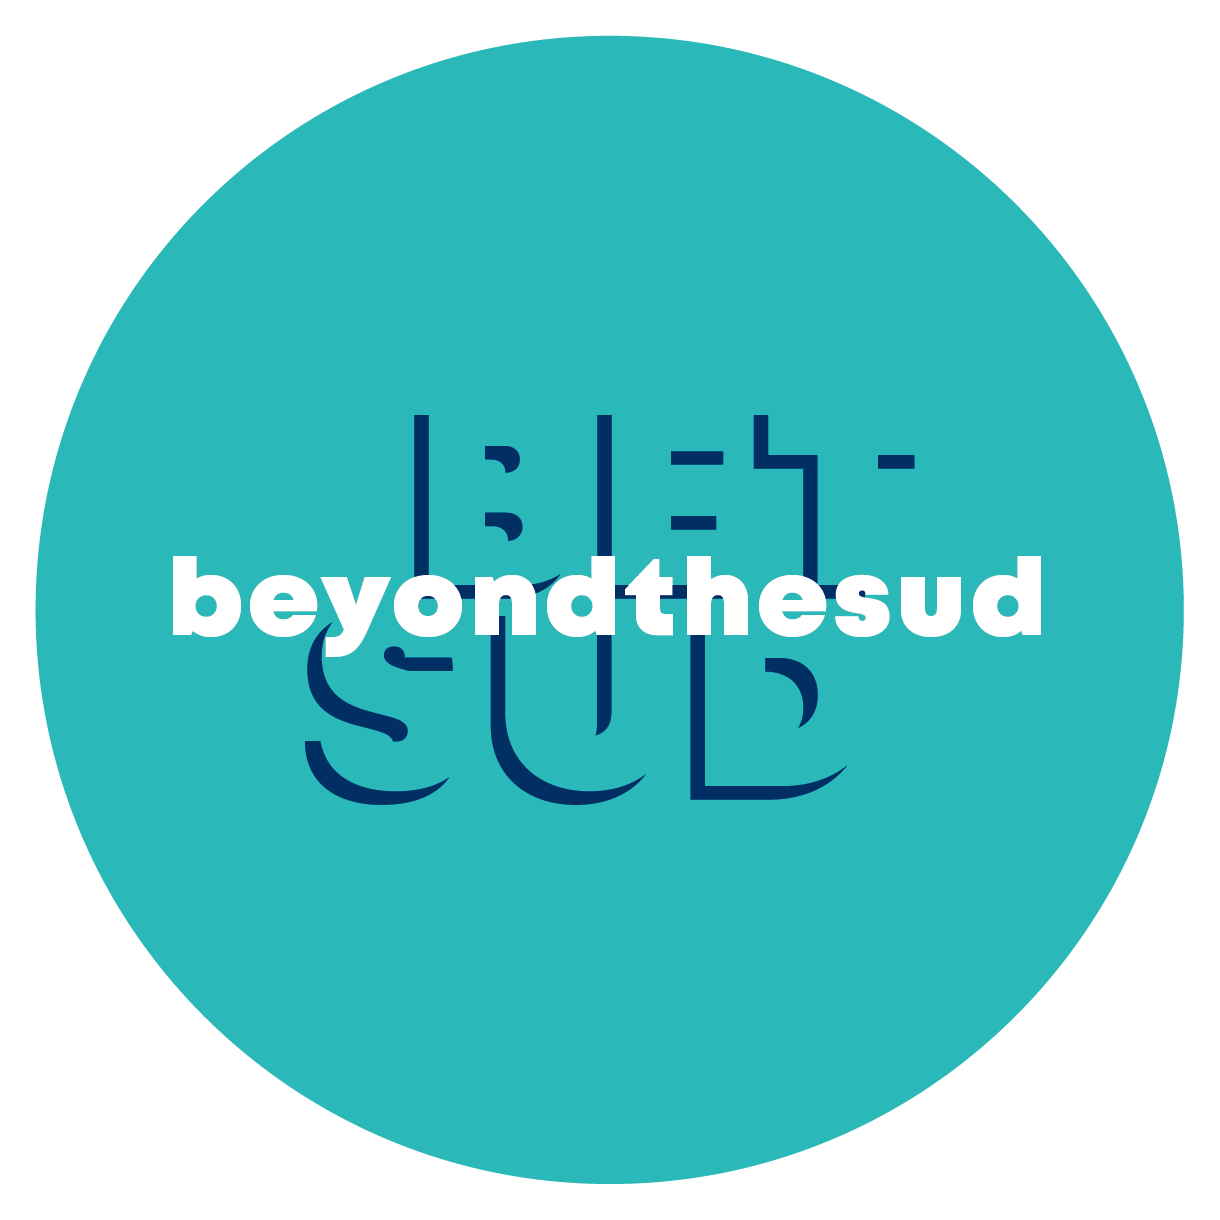 Beyond The Sud